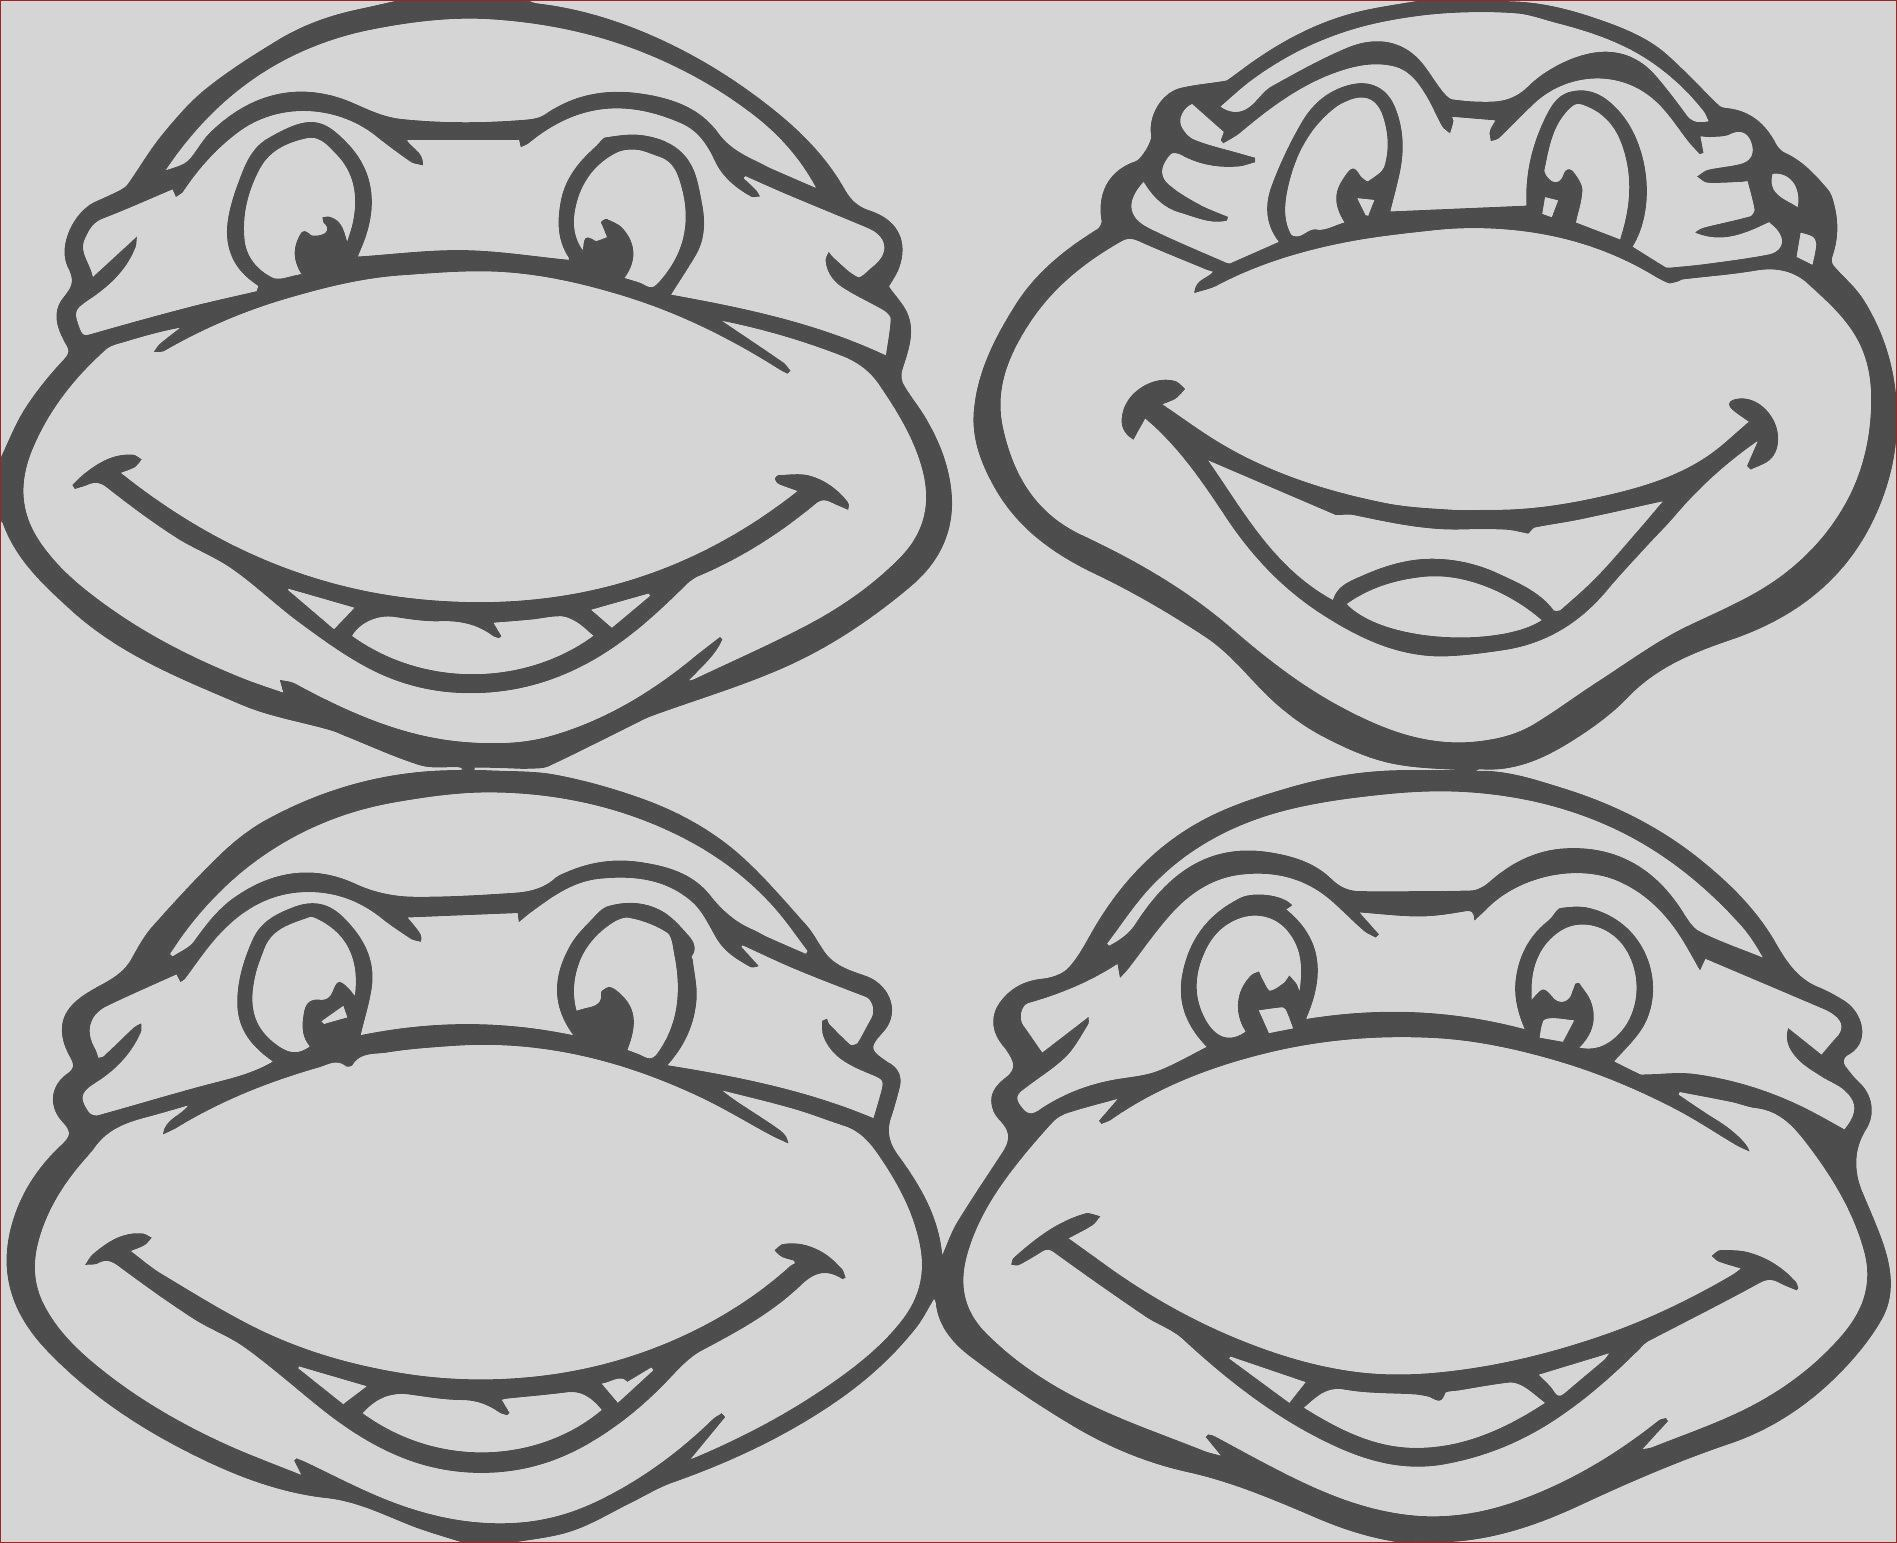 13 Unique Gallery Of Teenage Mutant Ninja Turtle Coloring Pictures In 2020 Turtle Coloring Pages Ninja Turtle Coloring Pages Ninja Turtle Drawing